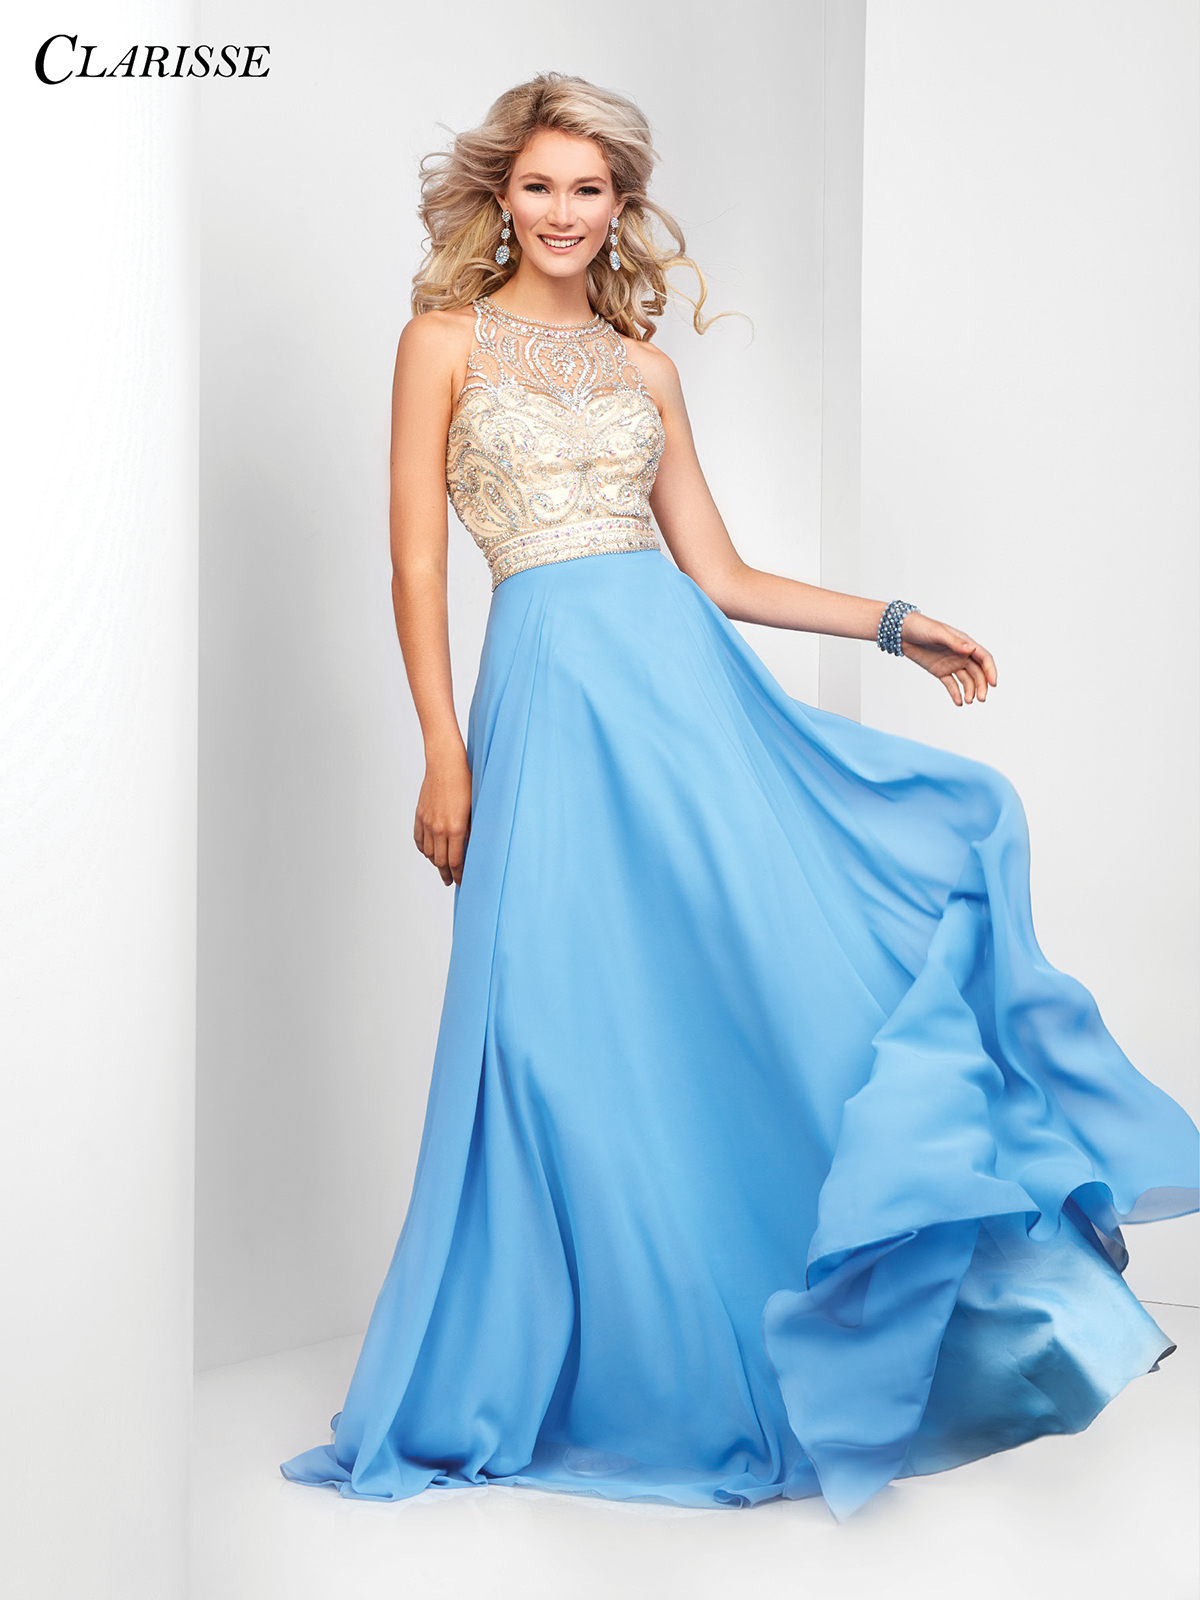 Make your special night that much more memorable with quality dresses and evening gowns from PromGirl, perfect for a wide range of styles and looks. Discover gorgeous prom dresses at less than $ in this sale like homecoming and V-neck dresses.